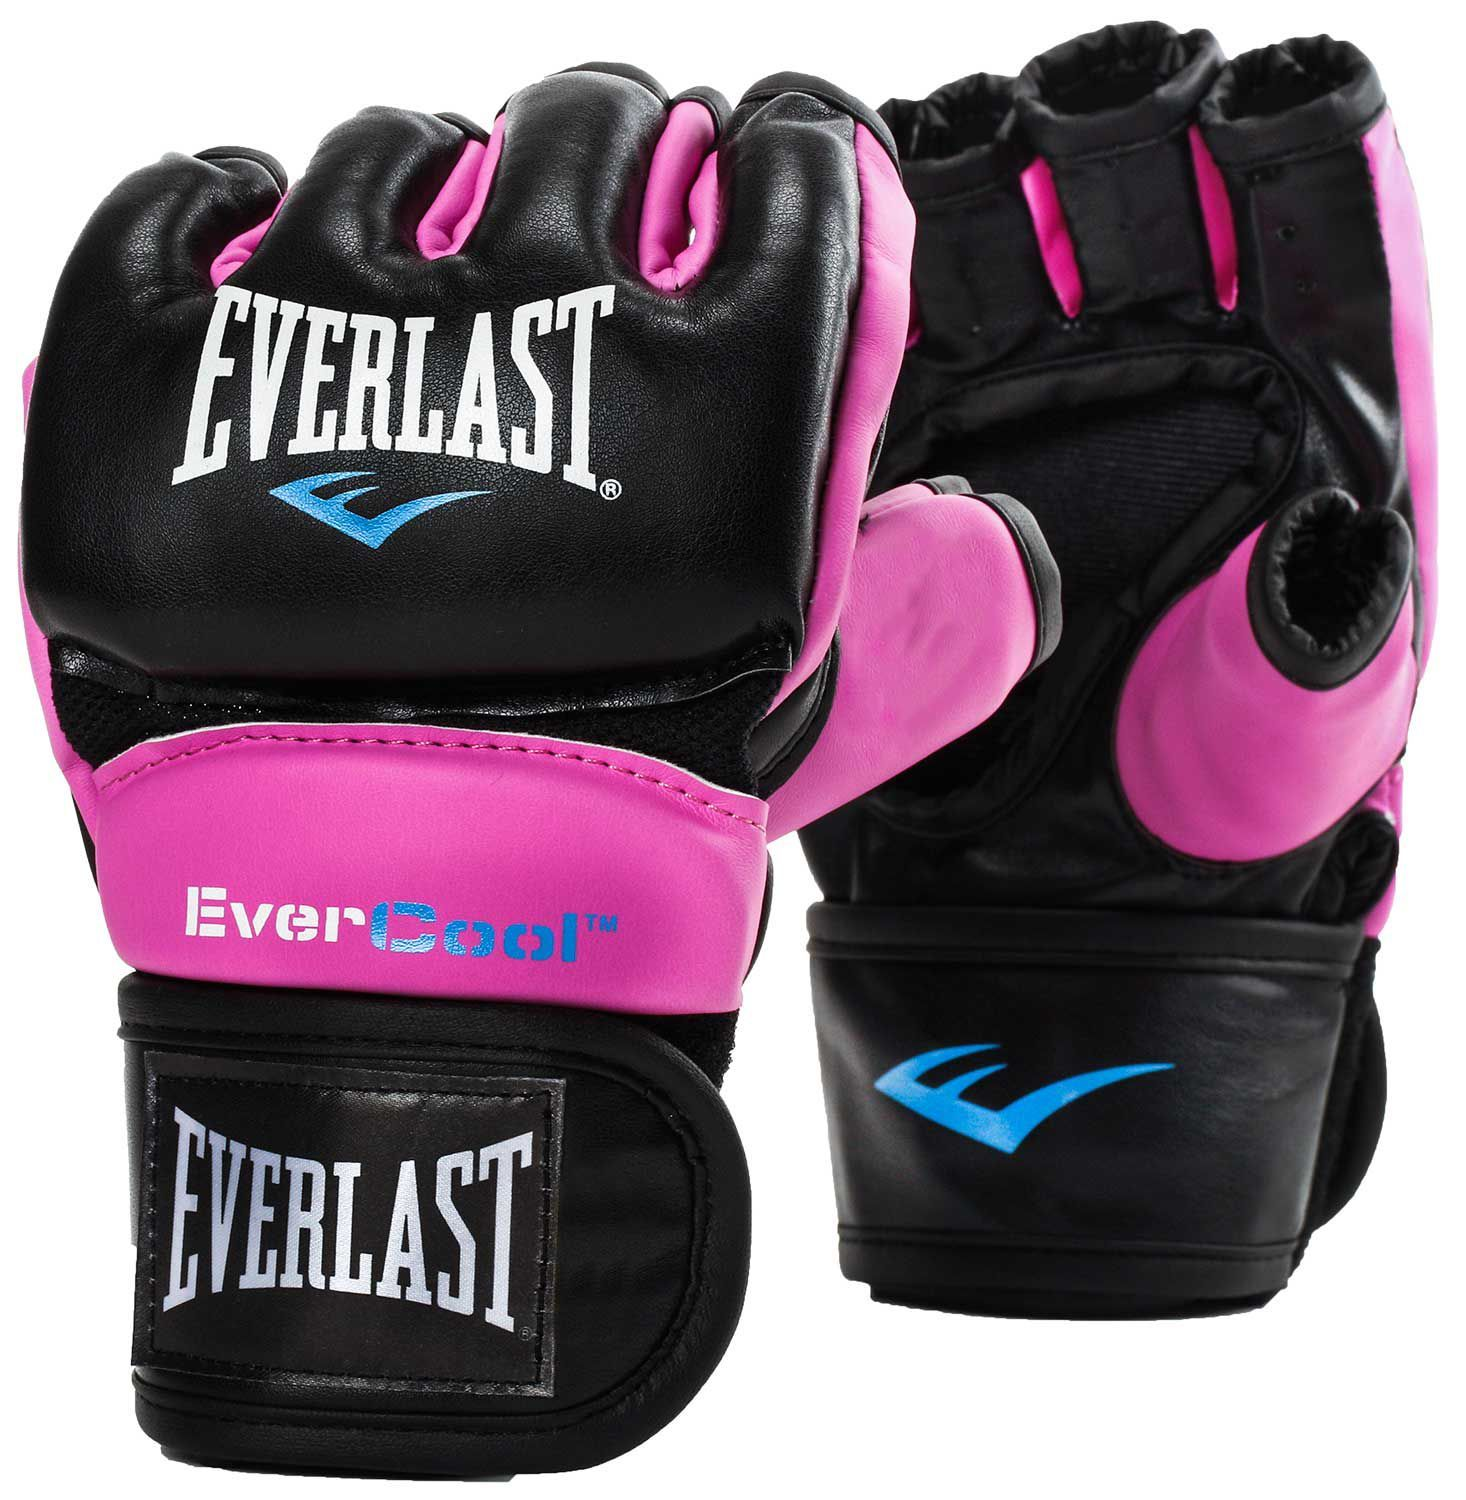 RDX Boxing Gloves Ladies Pink Women Pro Bag Mitts Training Kickboxing